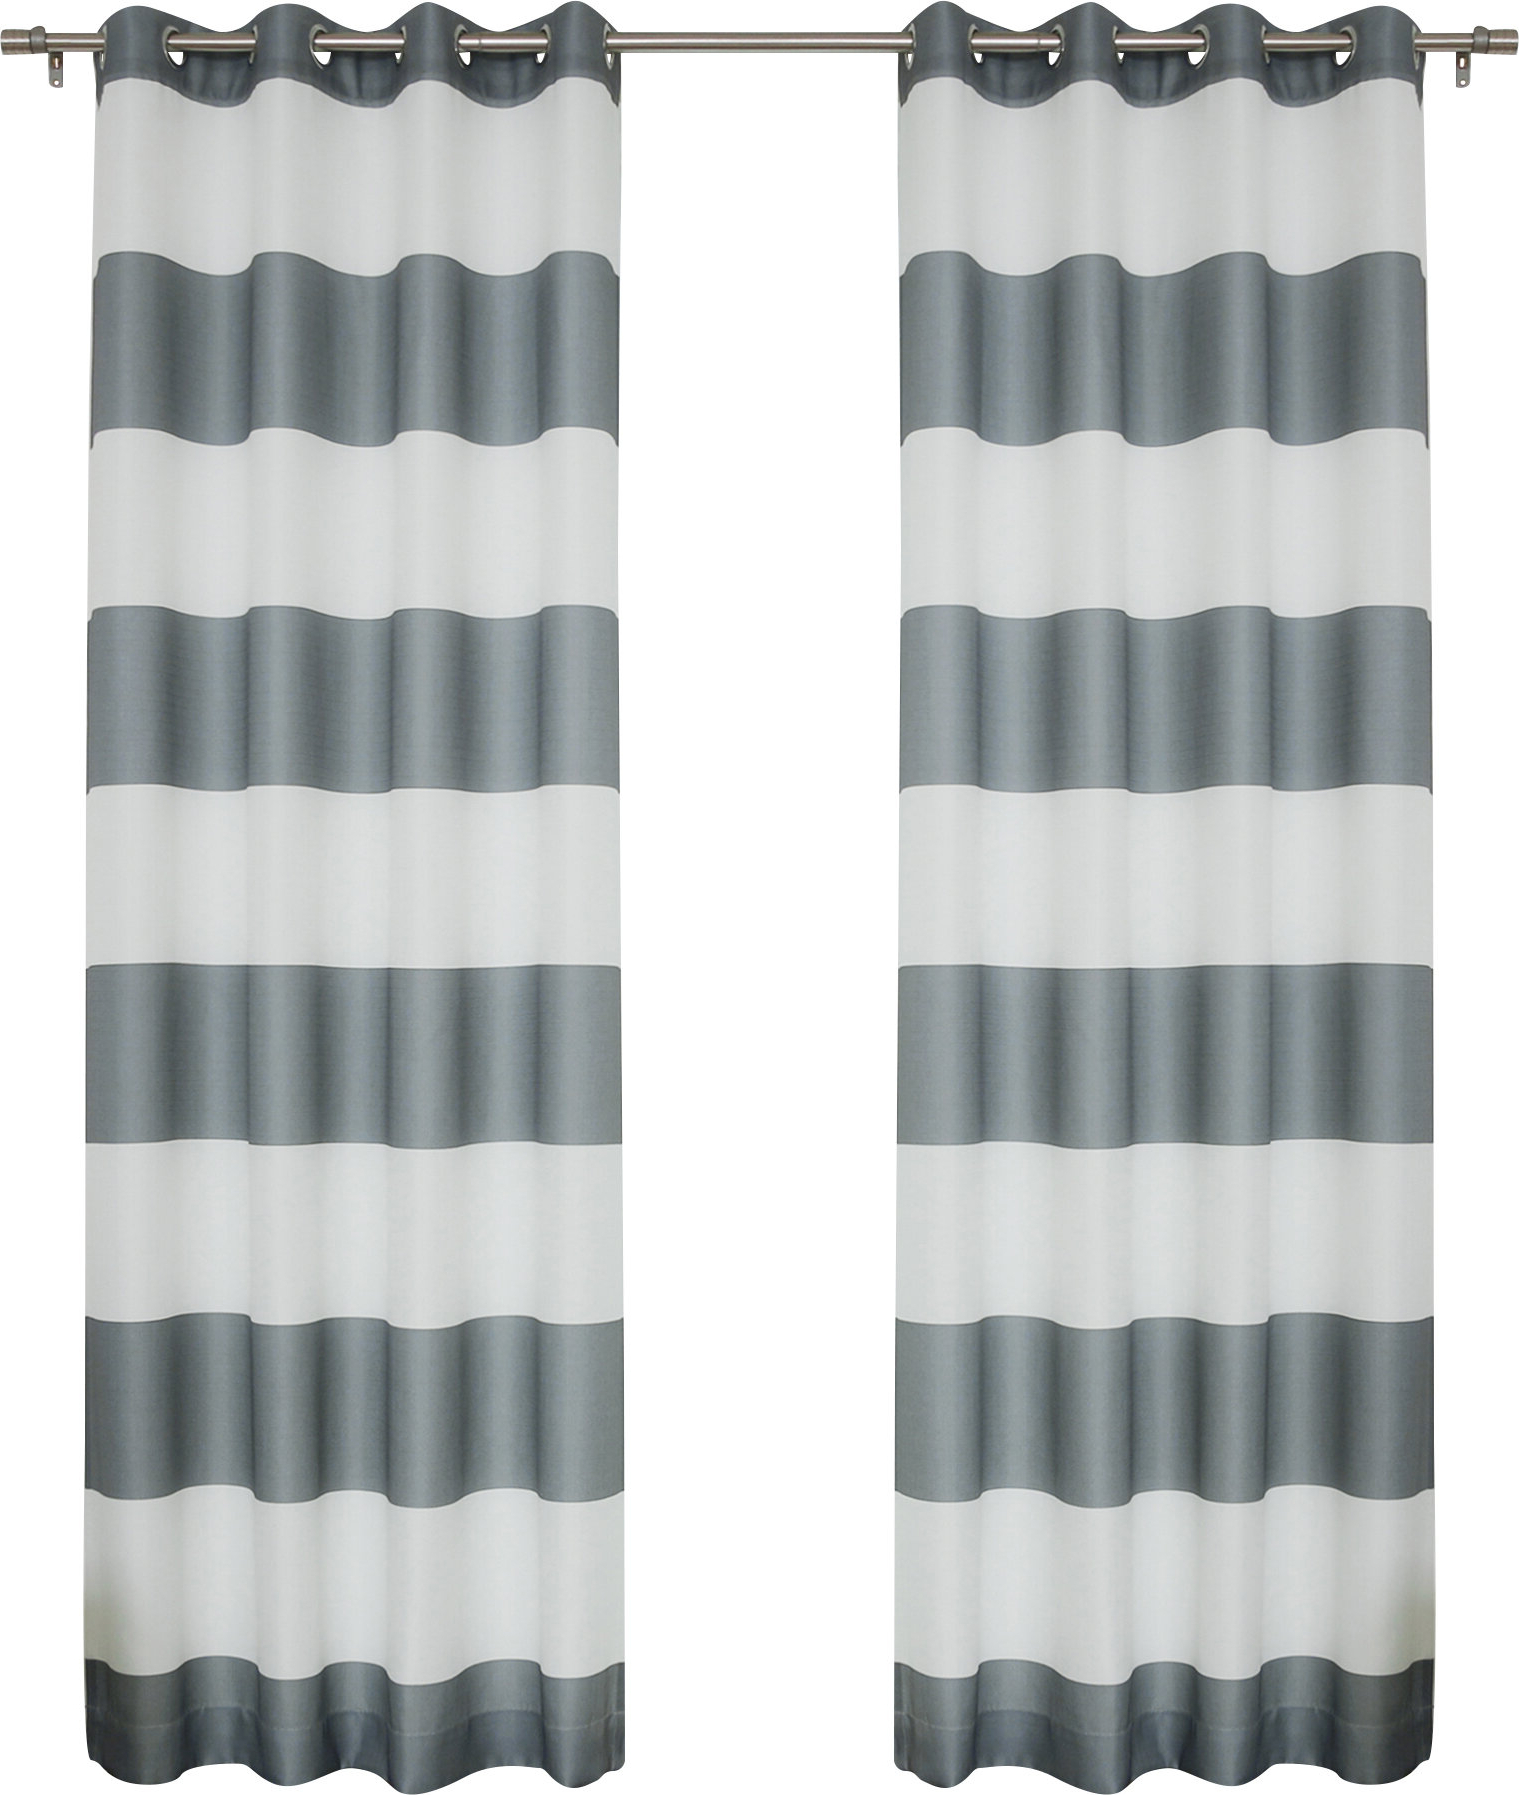 Inez Patio Door Window Curtain Panels Pertaining To Widely Used Paityn Rugby Curtain Panels (View 15 of 20)